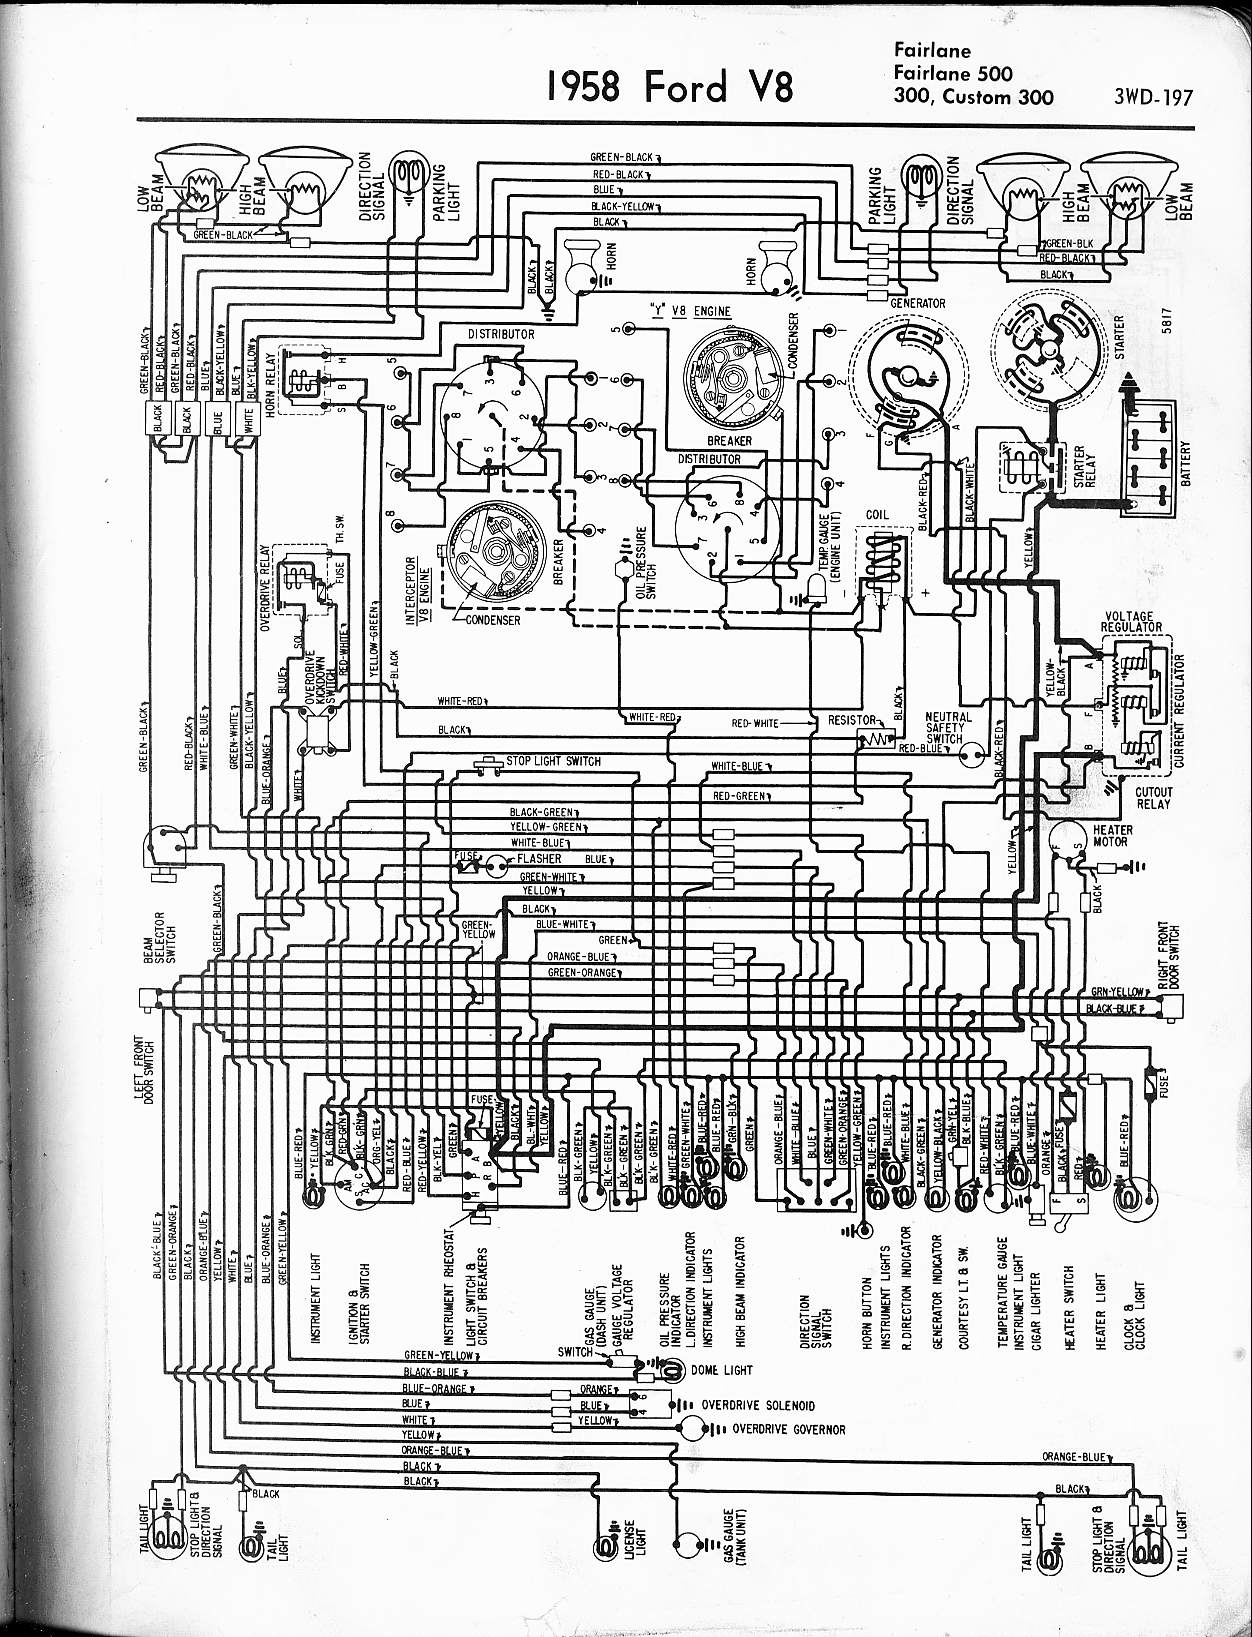 hight resolution of 1958 ford wiring diagram wiring diagram third level 1958 chevy truck wiring diagram 1958 edsel wiring diagram